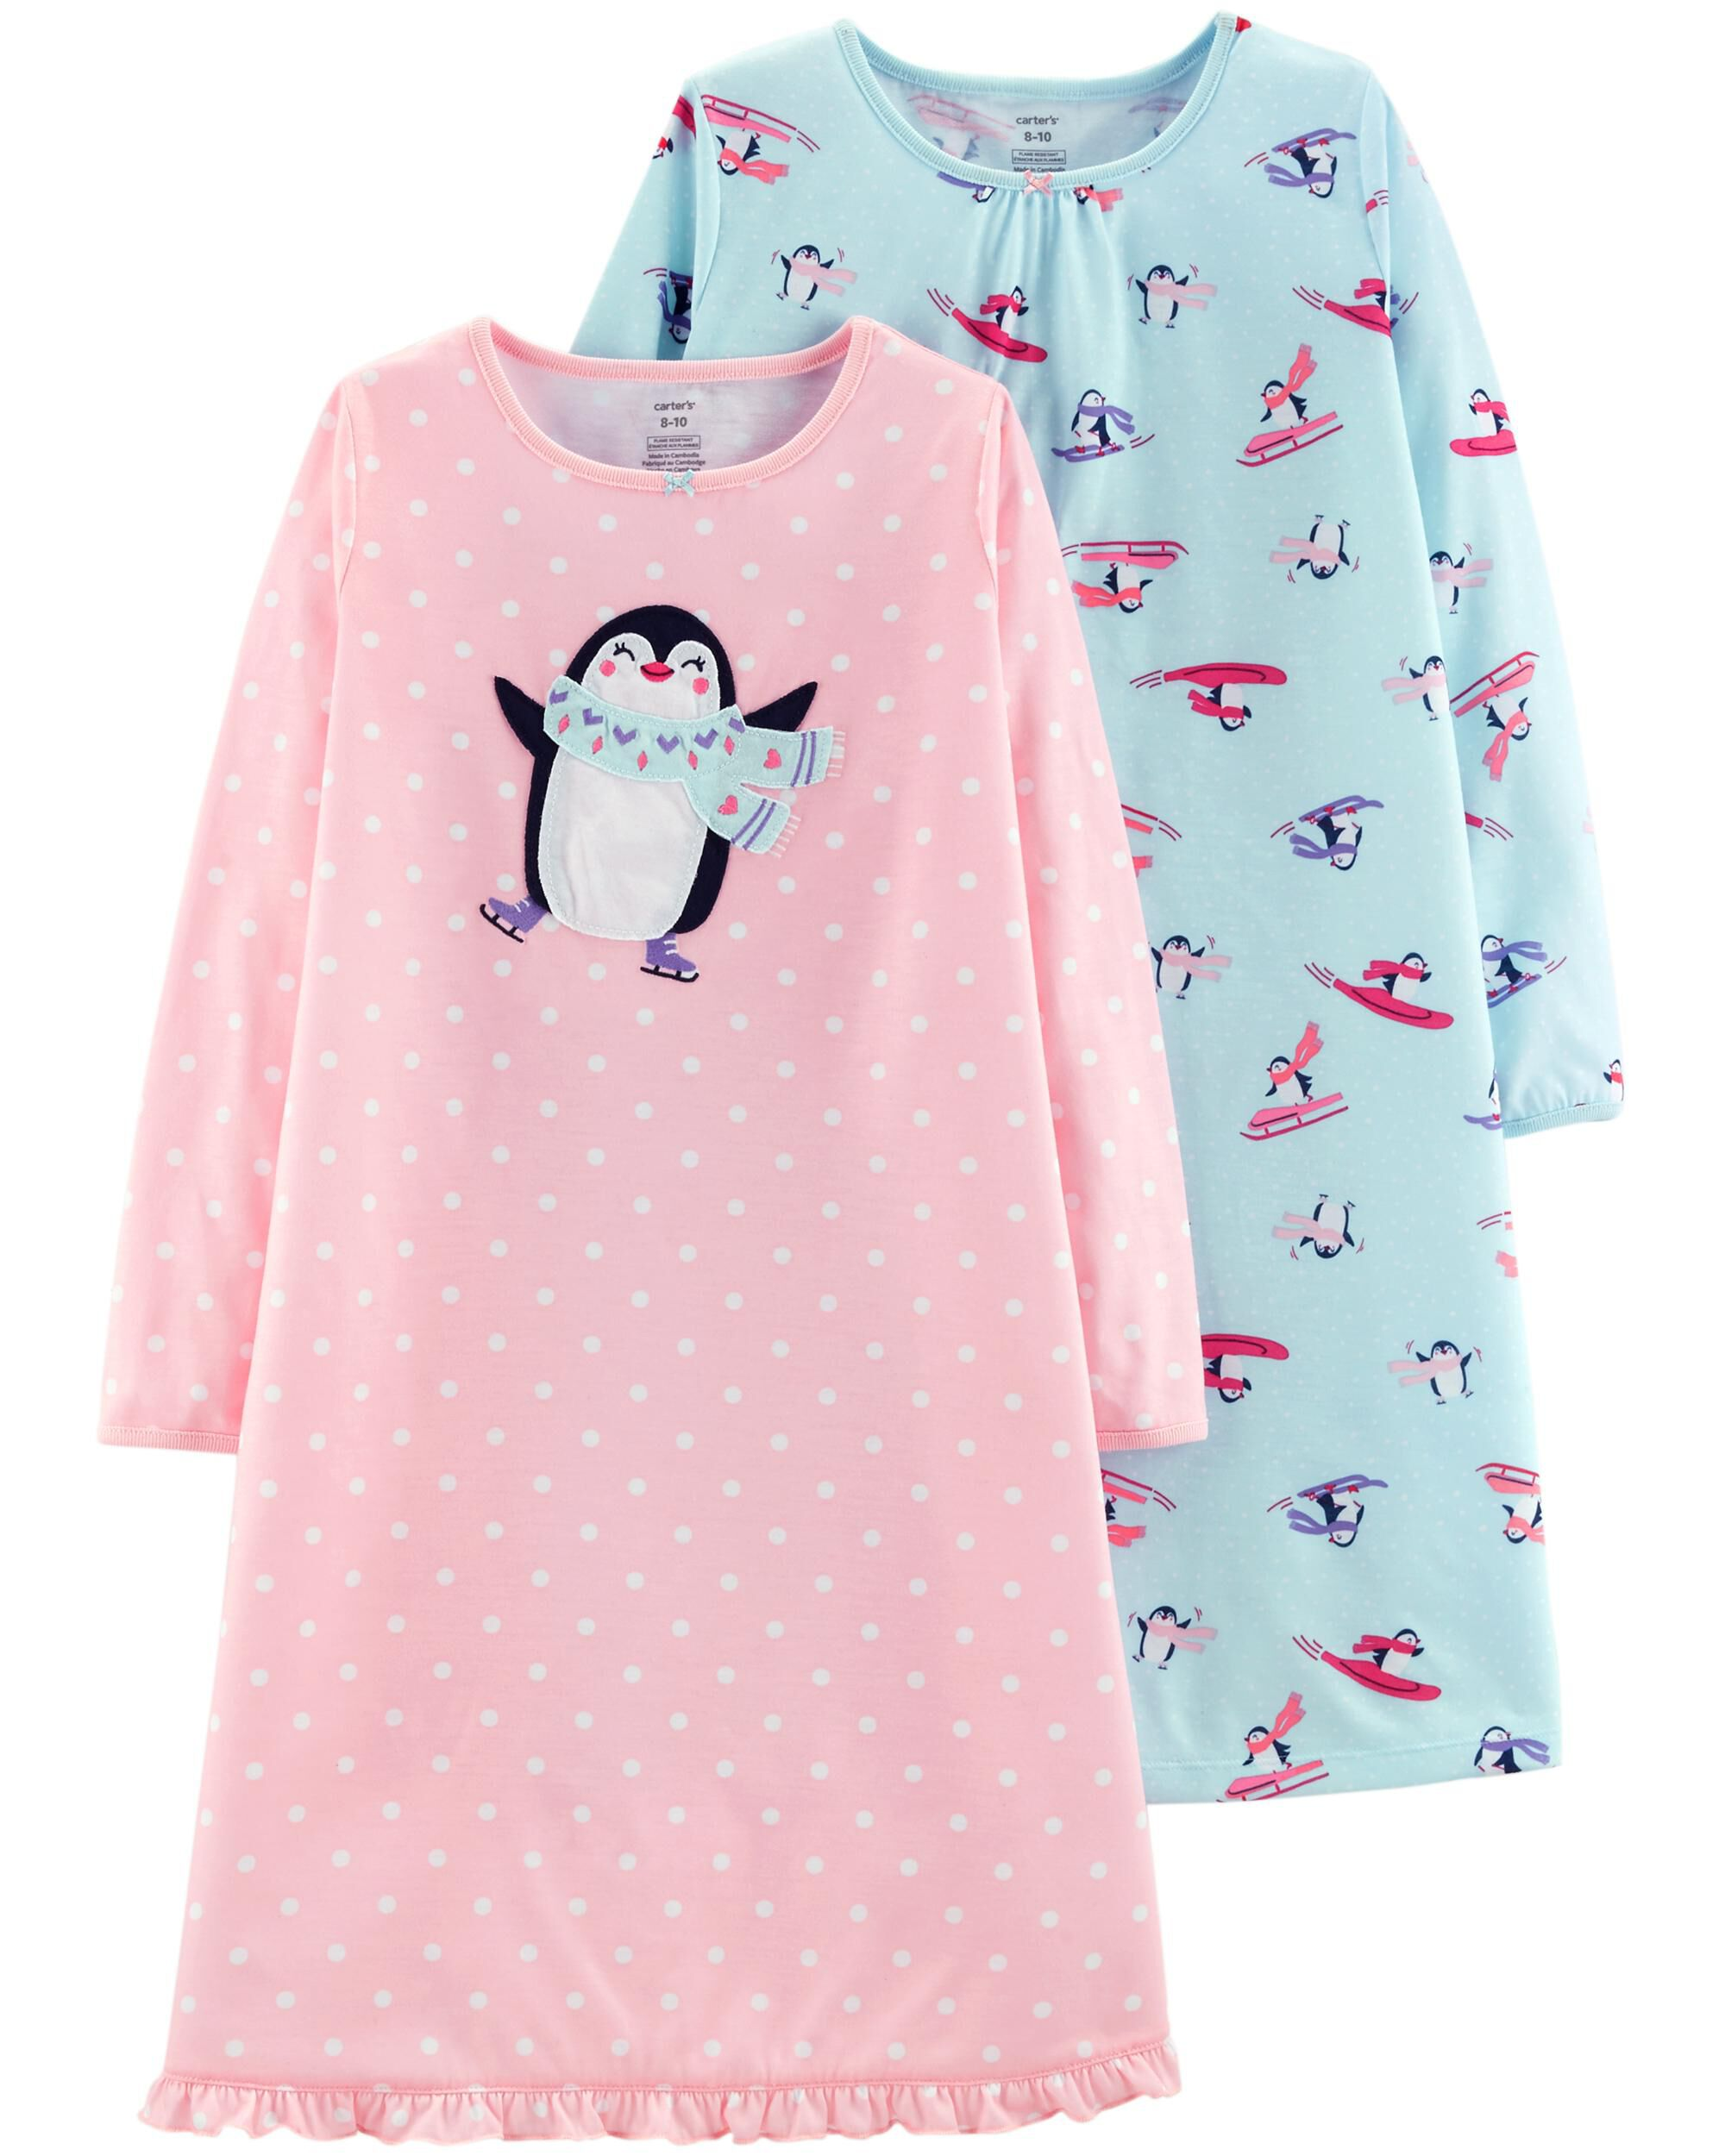 0c9329dbd9 2-Pack Penguin Nightgowns. Loading zoom